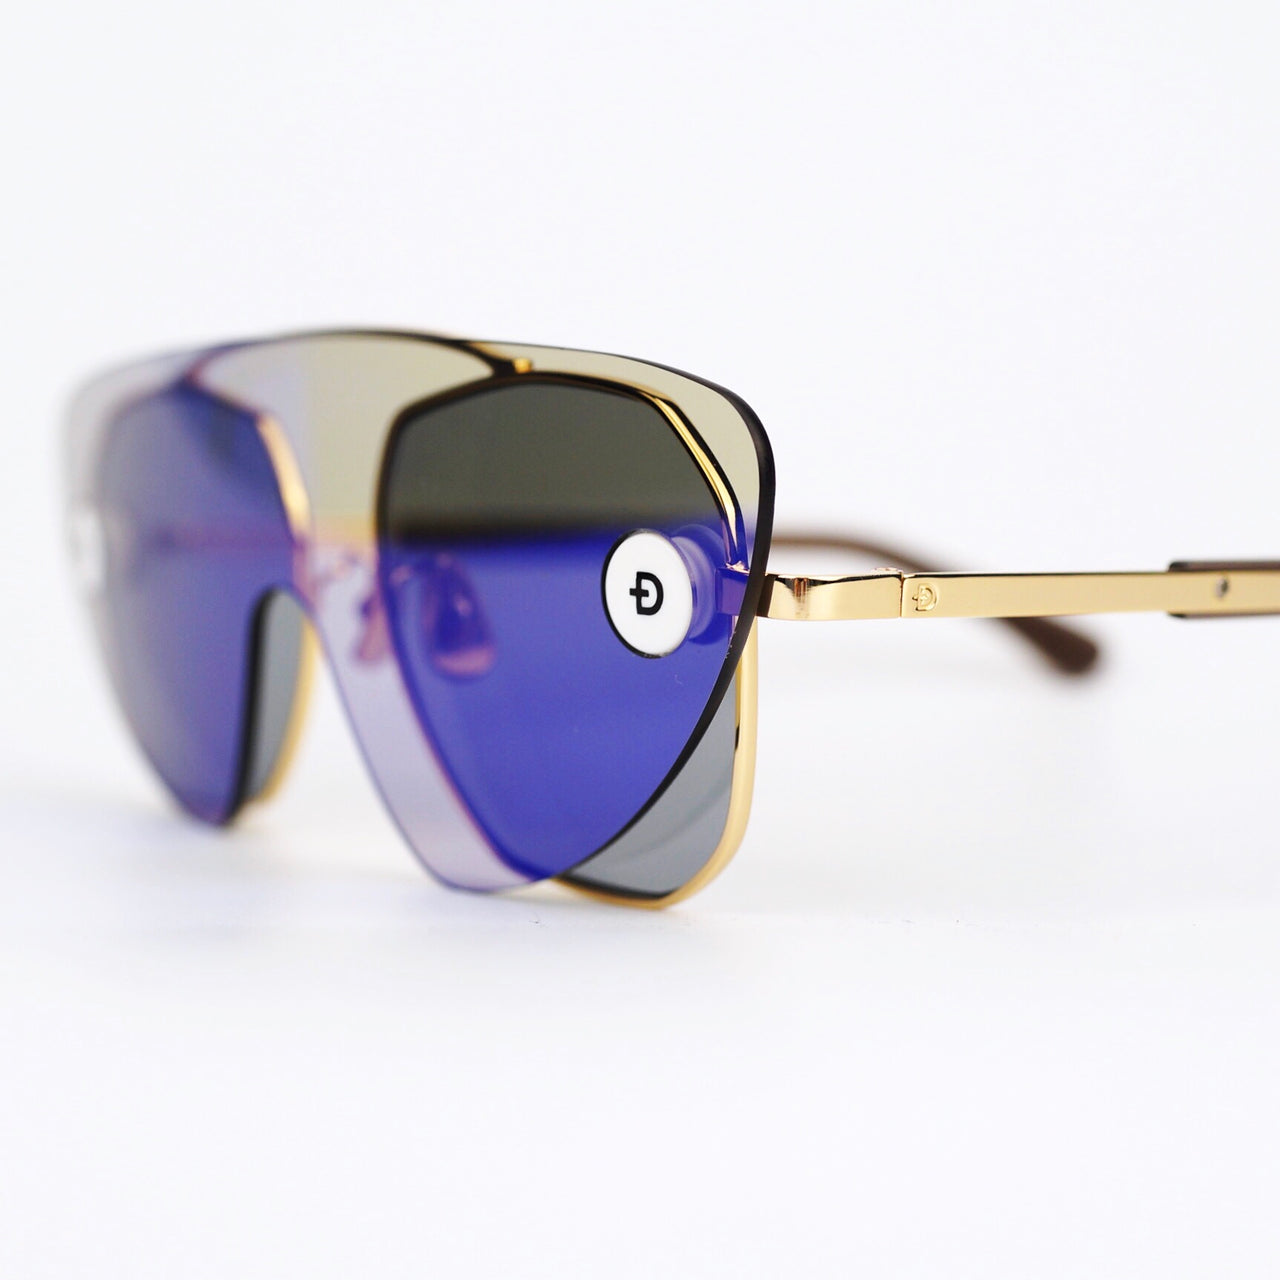 Gold Tone Metal Frame Sunglasses with Convertible Mirror Lenses